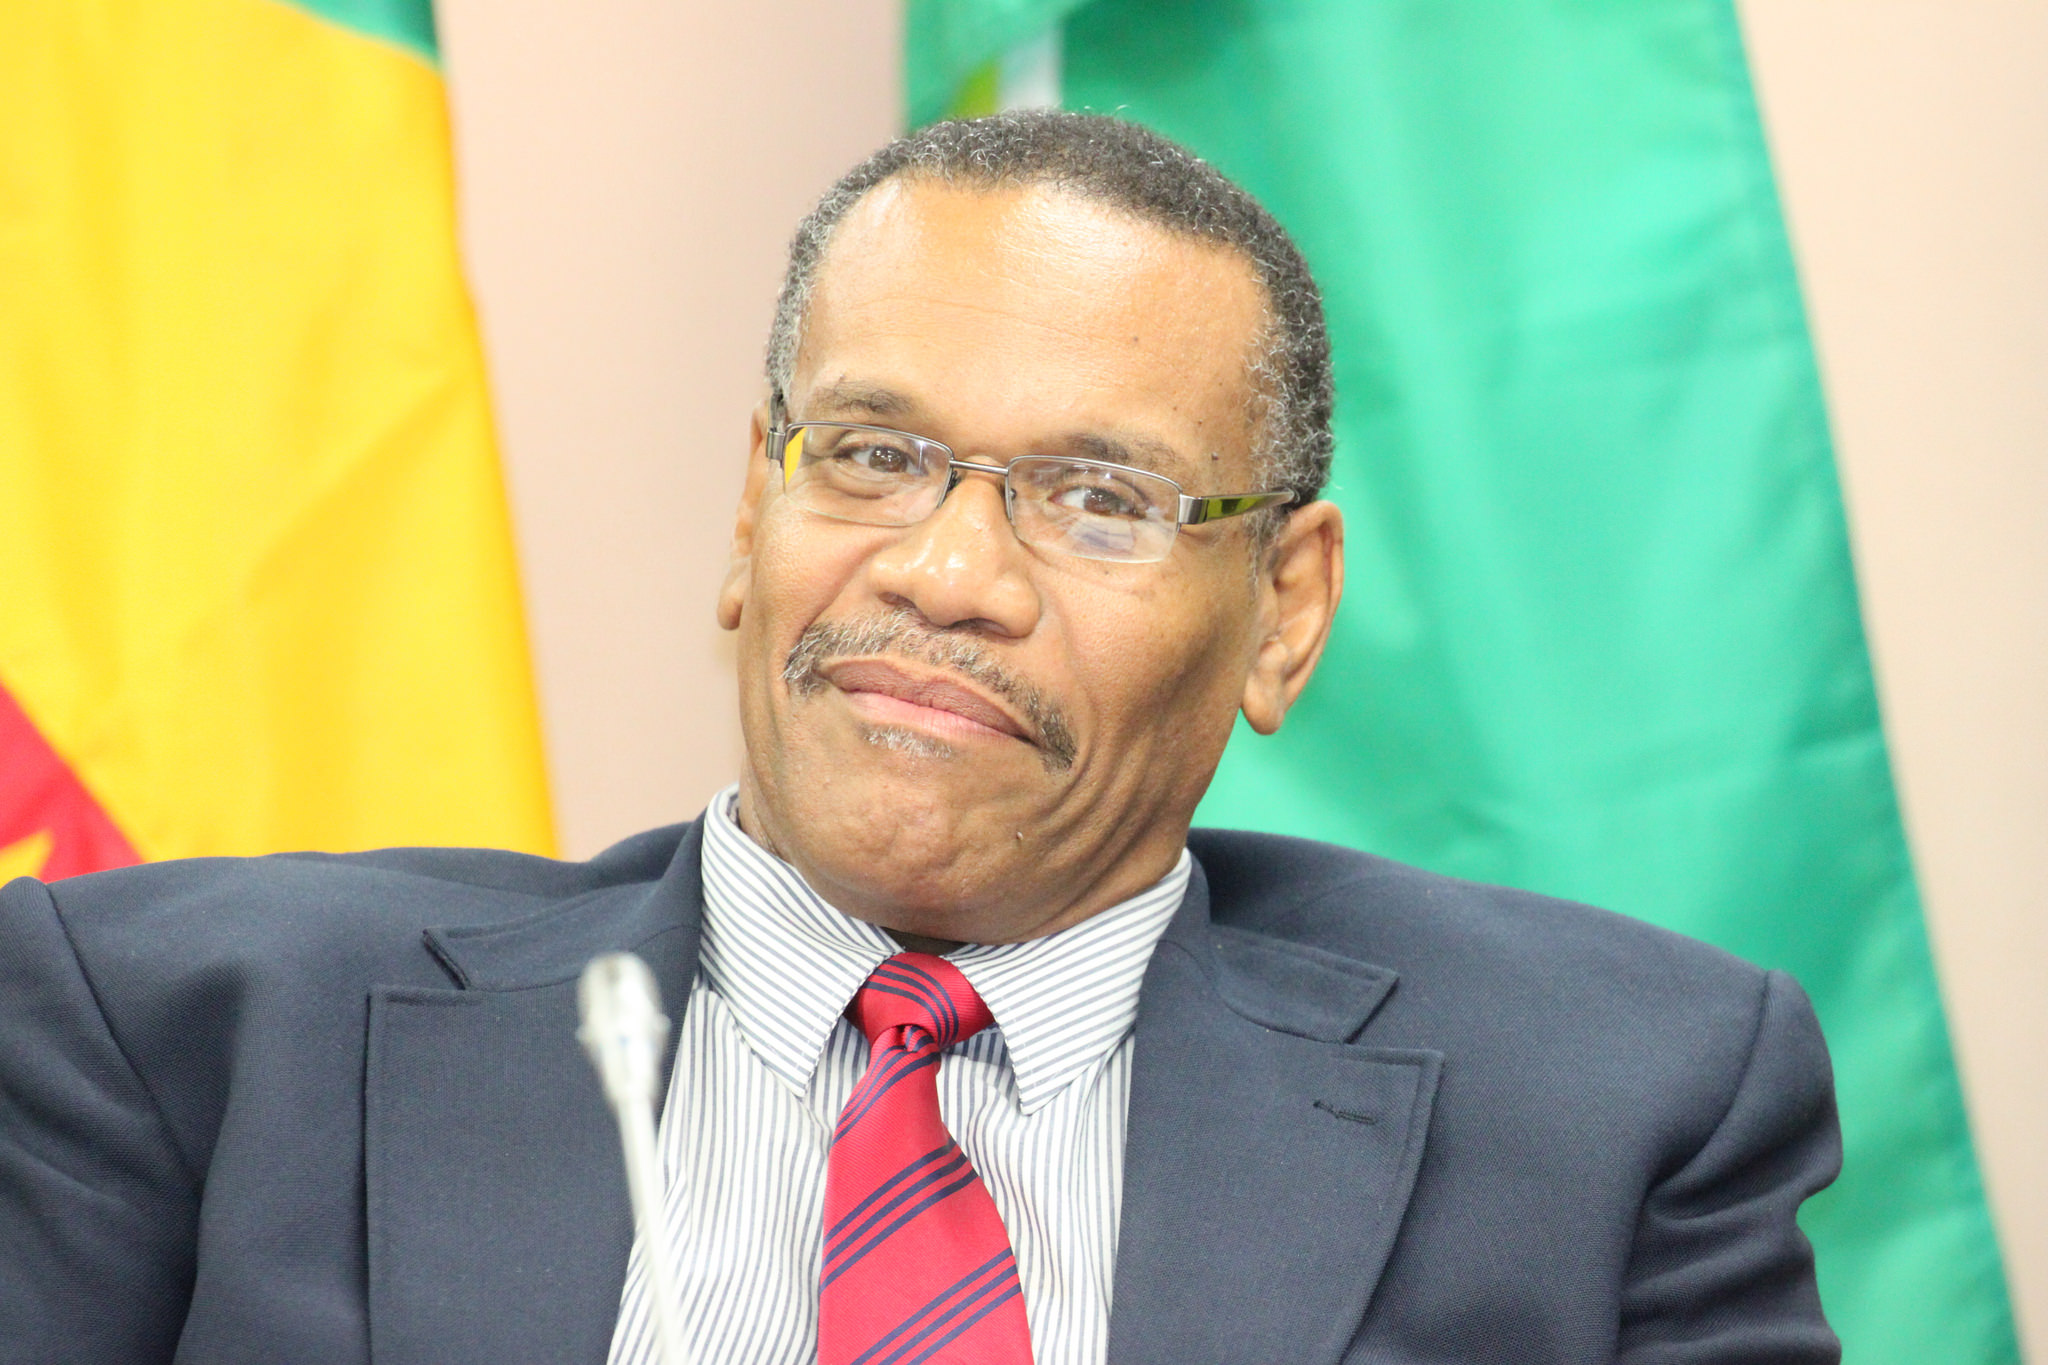 Mr. Joseph Cox, Assistant Secretary-General, Trade and Economic Integration, CARICOM Secretariat